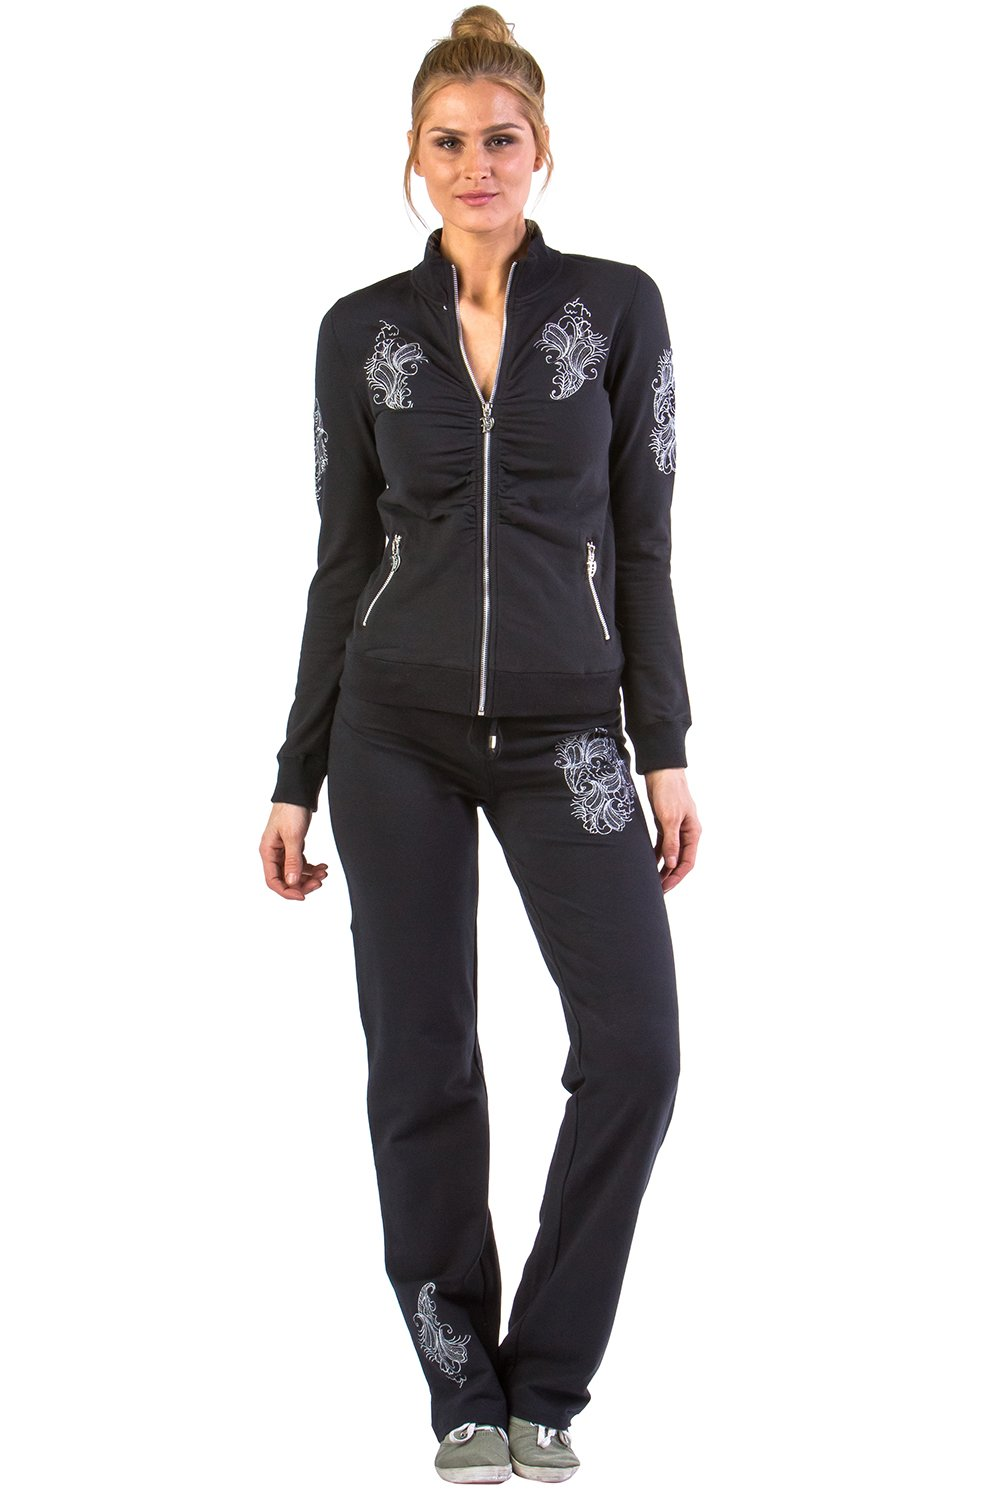 Vertigo Paris Women's Mock Neck Embroidered Lounge Tracksuit Jog Set - Black - Small